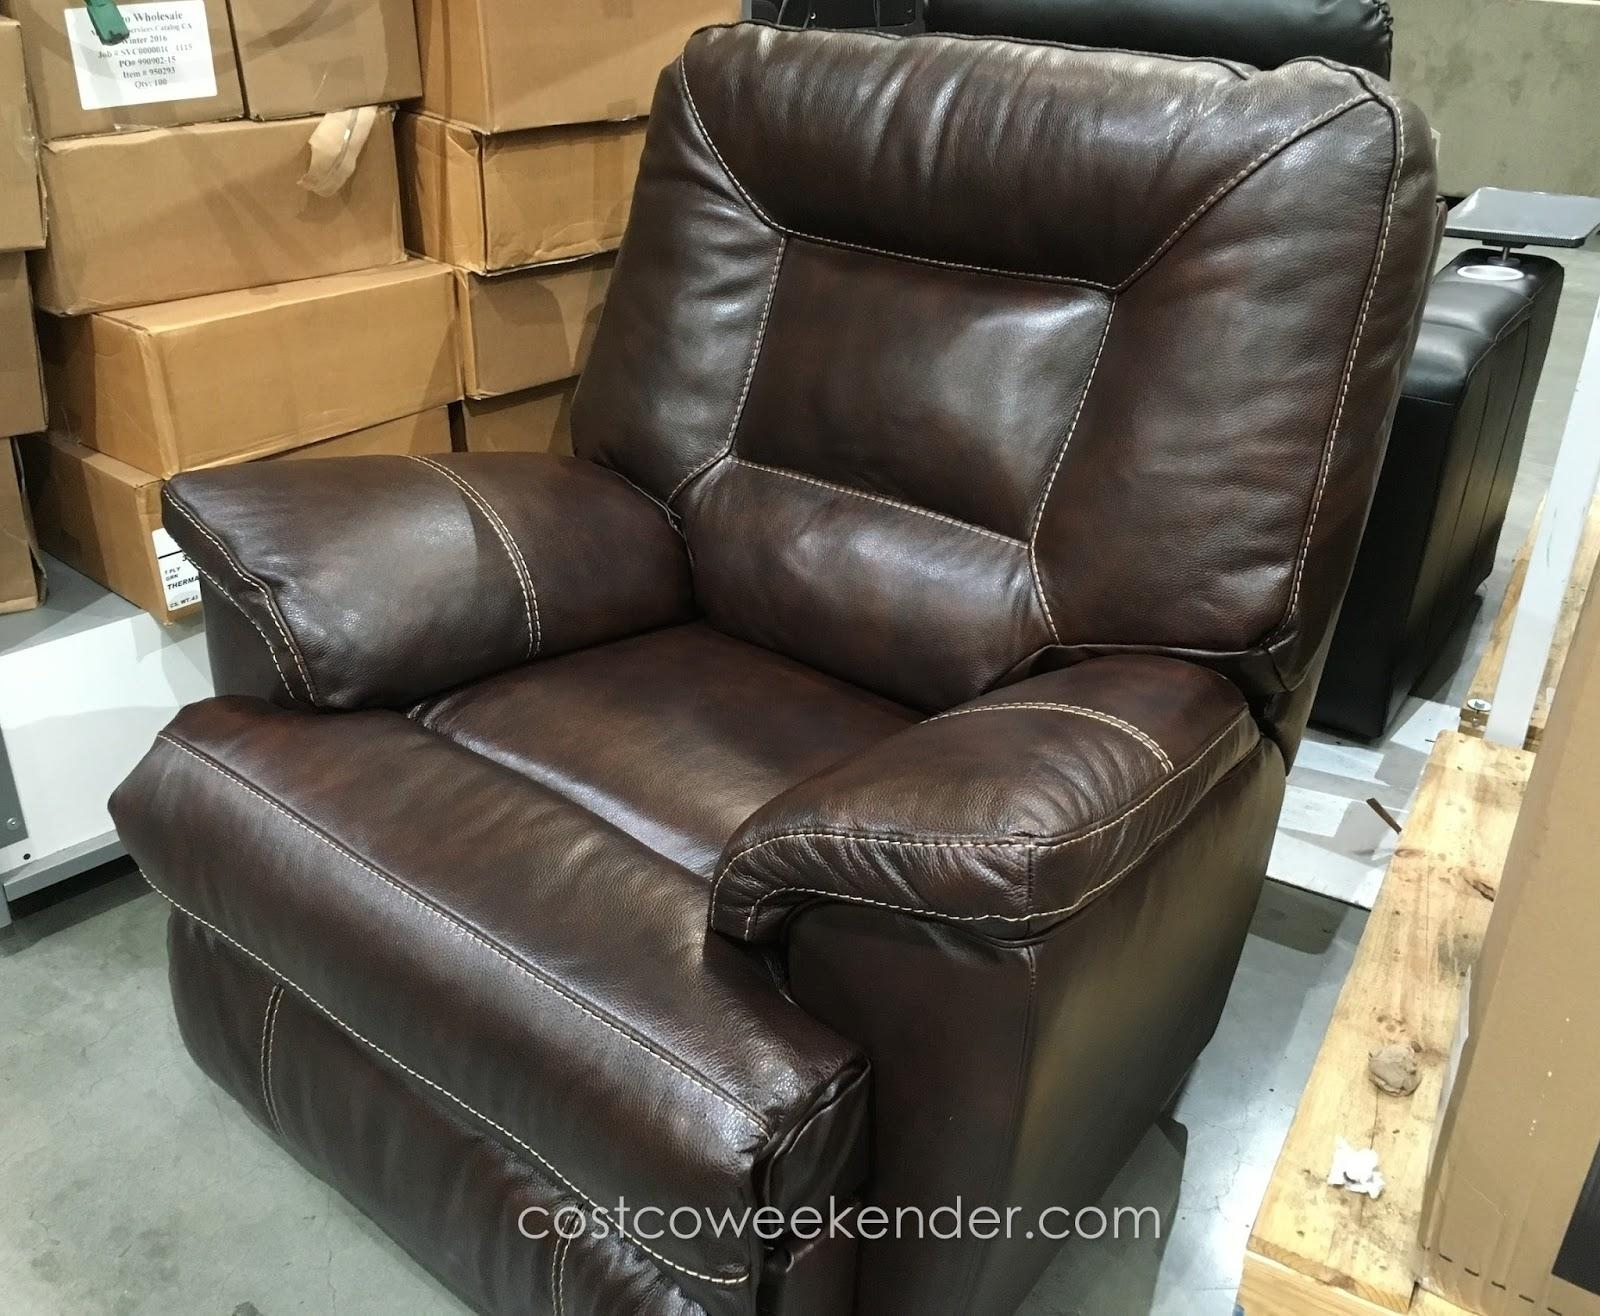 Sofas Center : Shocking Leatherlining Sofa Image Design Furniture Intended For Berkline Reclining Sofas (View 5 of 20)